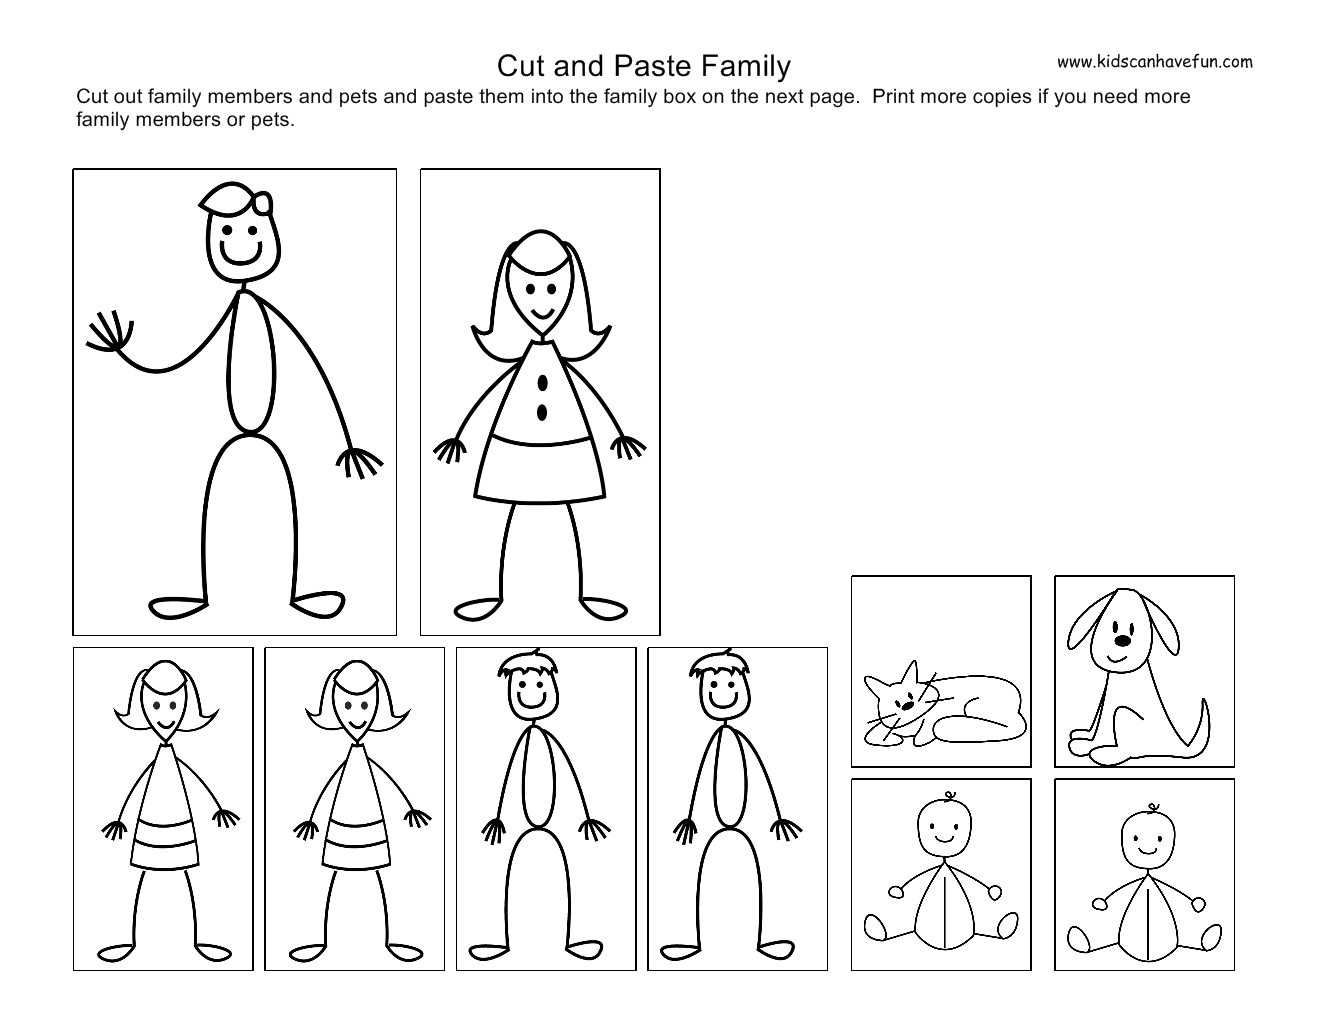 Cut and Paste Kids, Family Worksheets  My family, Worksheets for  alphabet worksheets, worksheets for teachers, learning, printable worksheets, math worksheets, and education Friendship Worksheets For Kindergarten 1019 x 1319